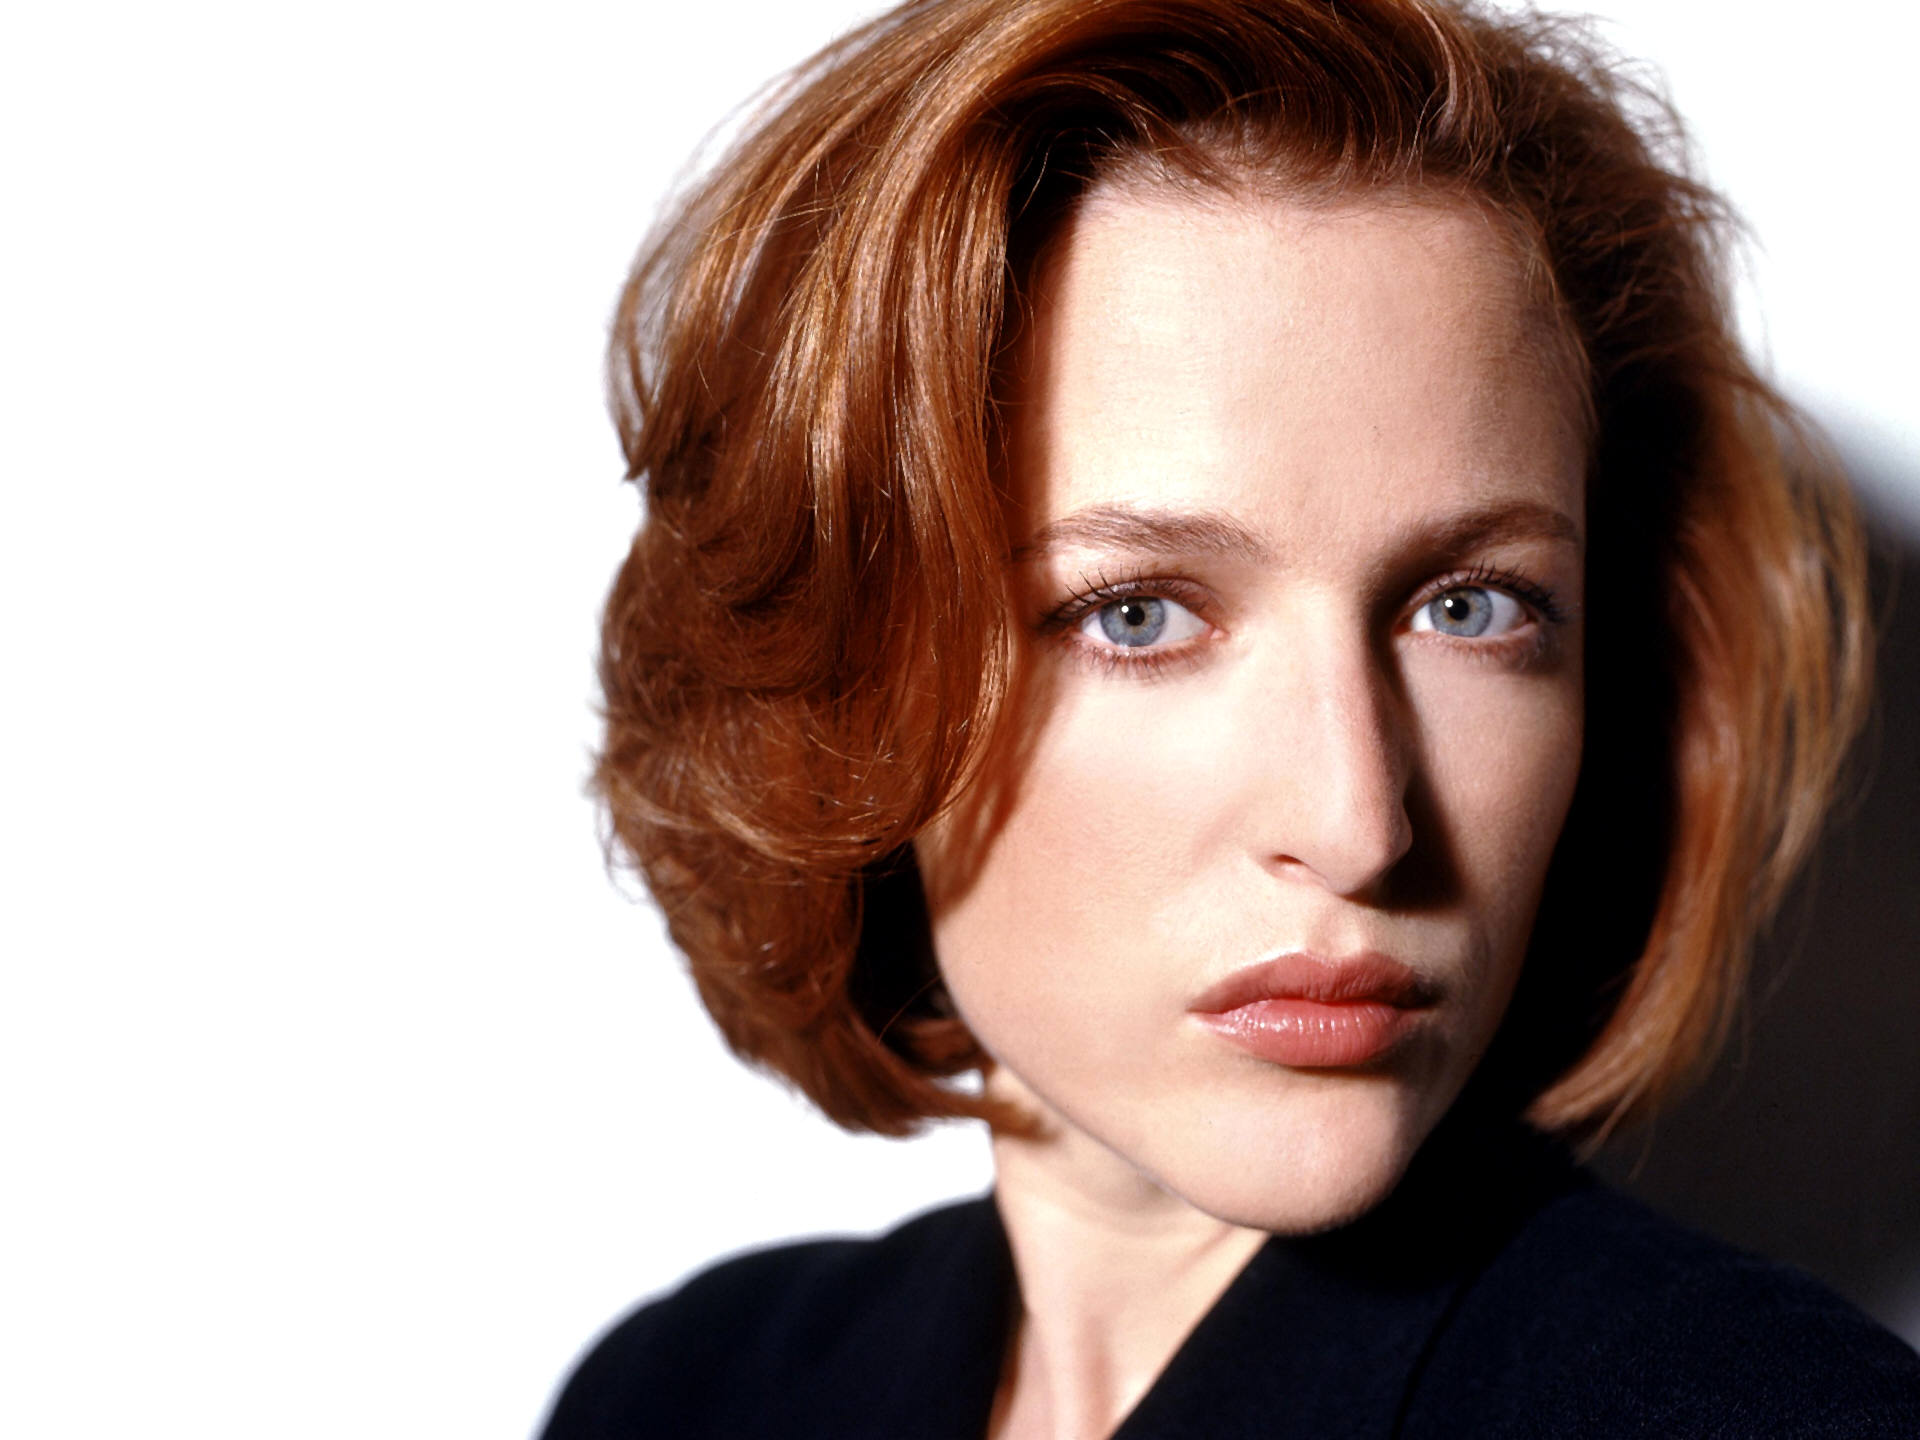 1920x1440 - Gillian Anderson Wallpapers 15